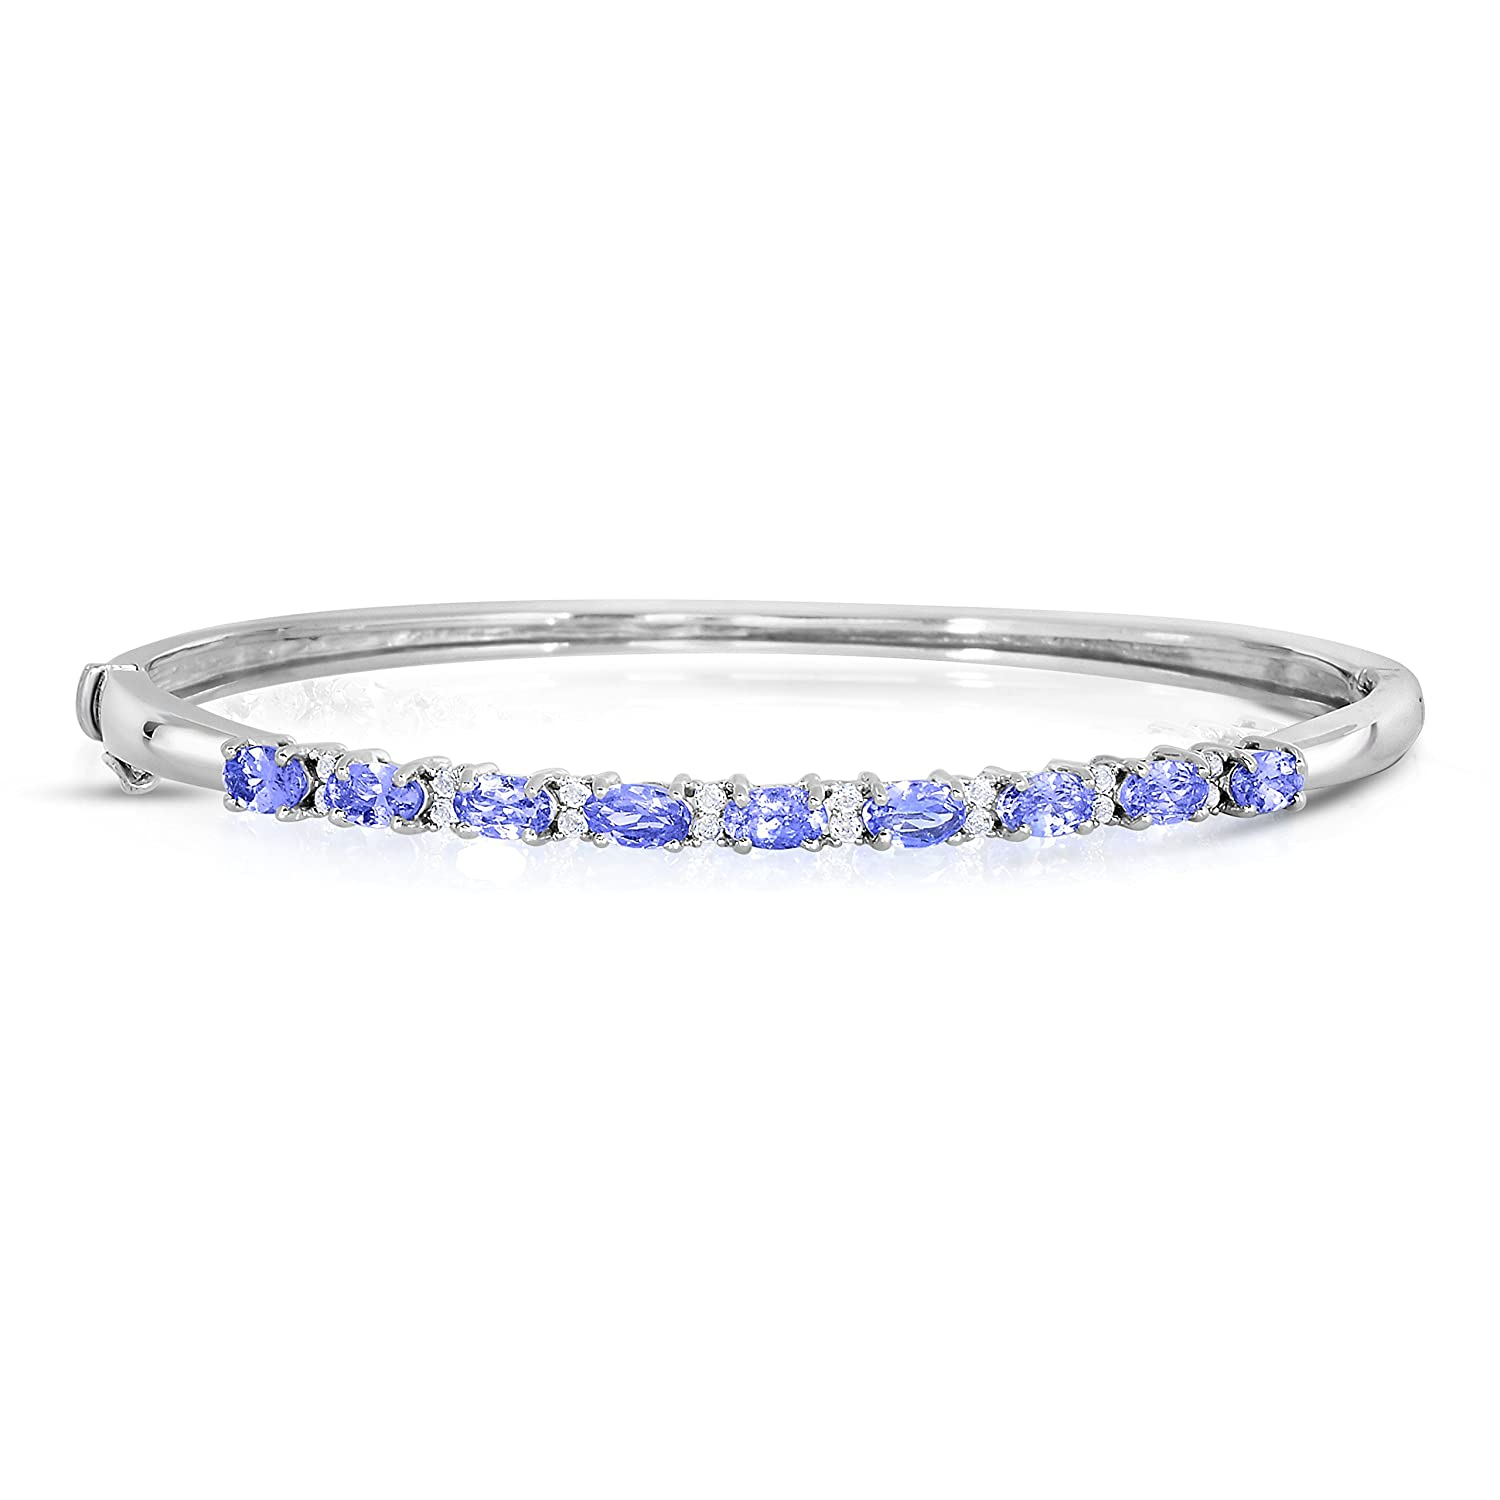 NATALIA DRAKE 2-1//3 Cttw Genuine Oval Tanzanite and White Topaz Bangle in Sterling Silver